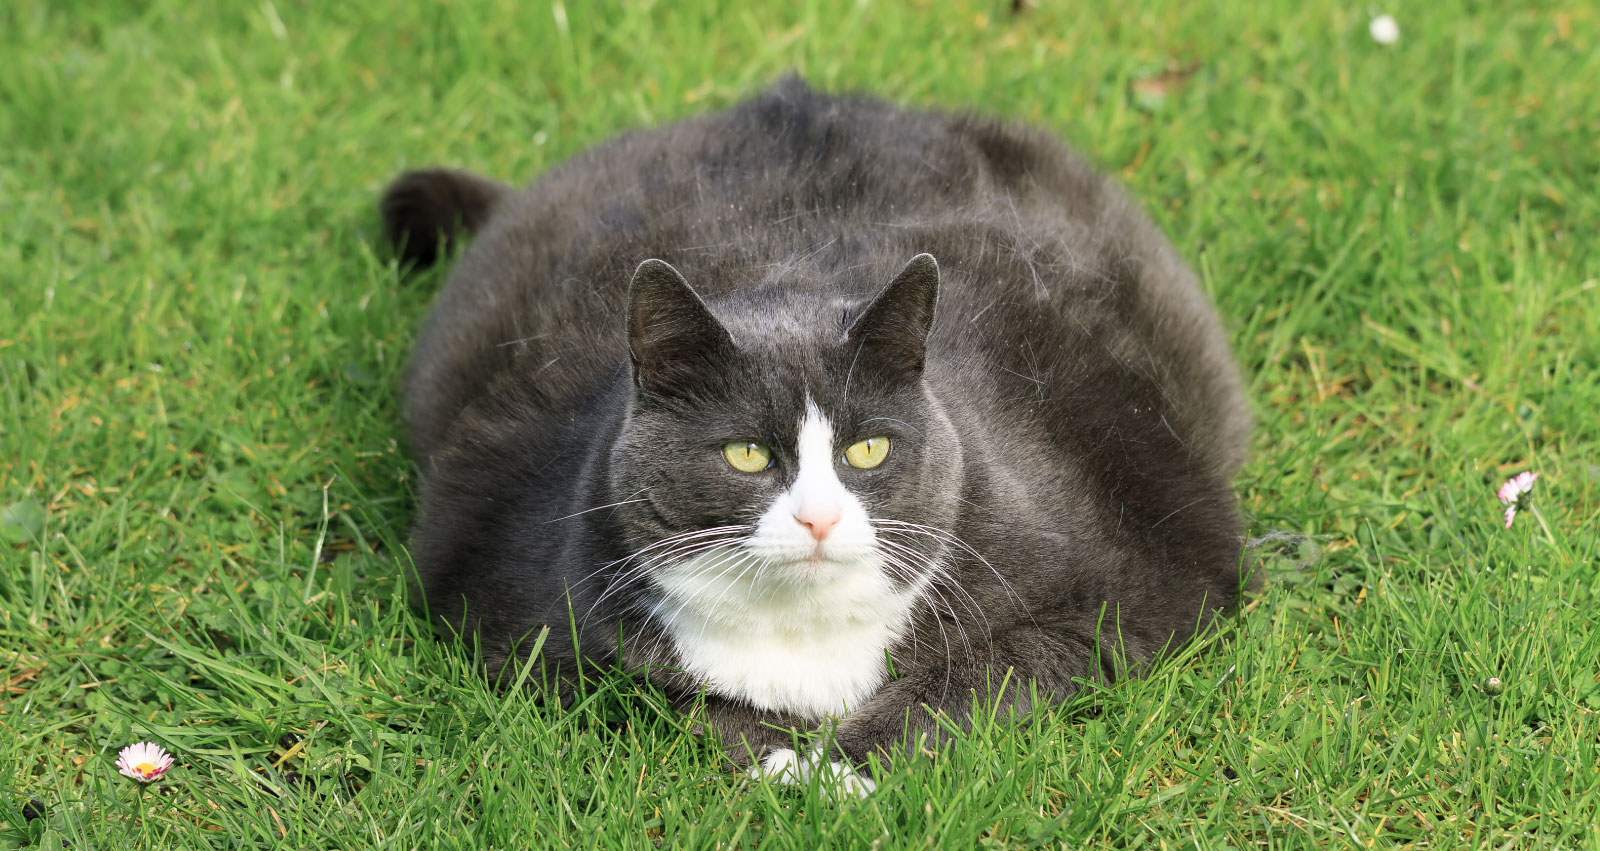 What Everyone Should Know About Fat Cats - Dr. Basko ...